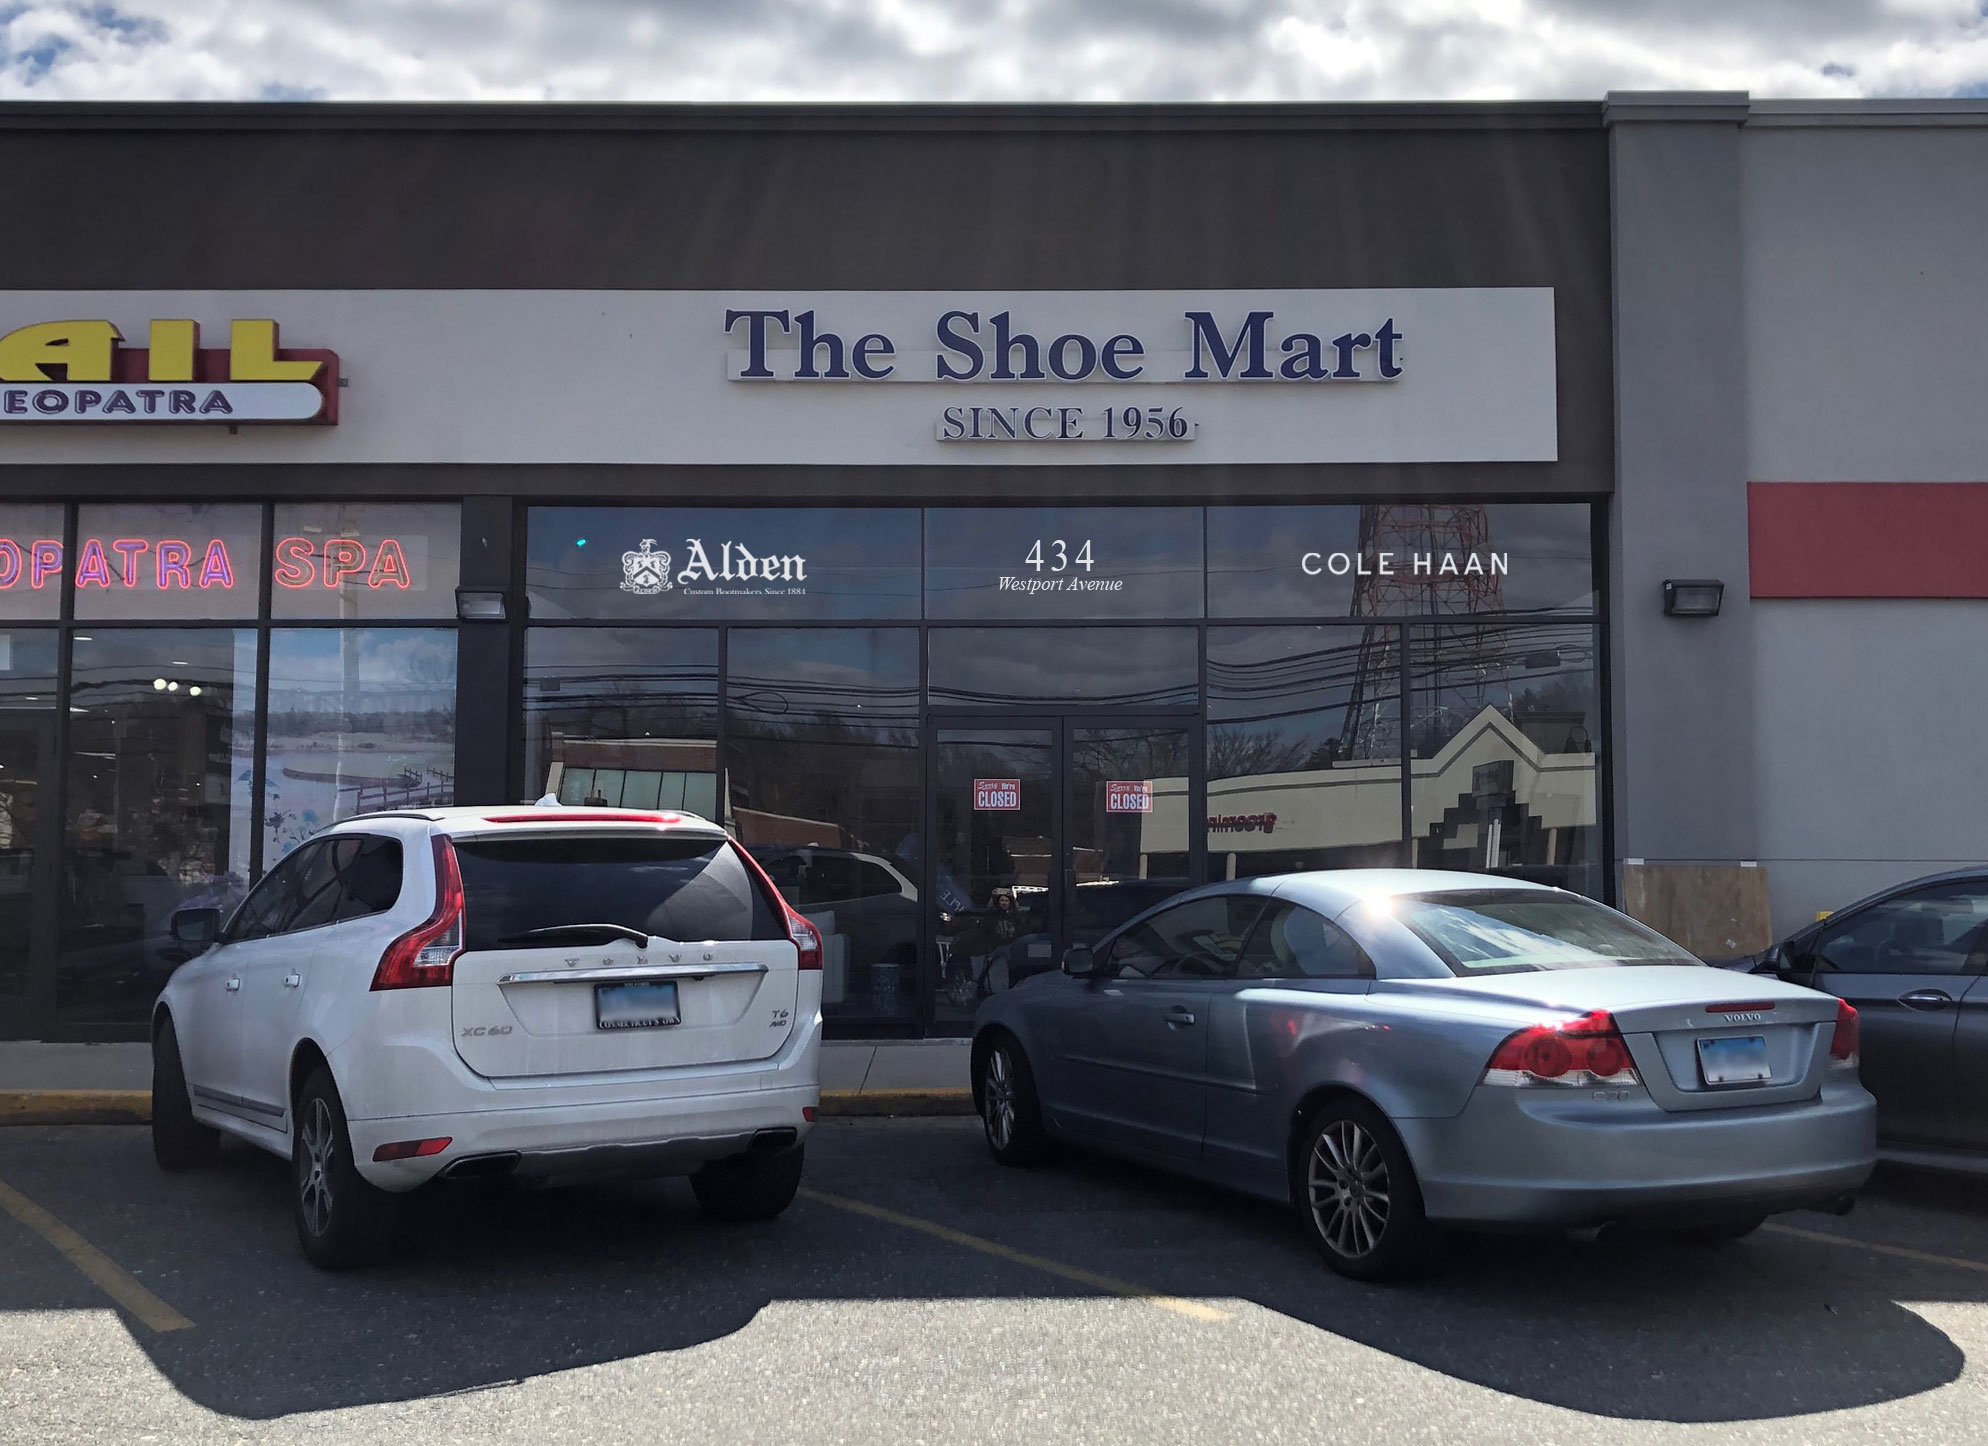 TheShoeMart | The Shoe Mart's new storefront on 434 Westport Ave.